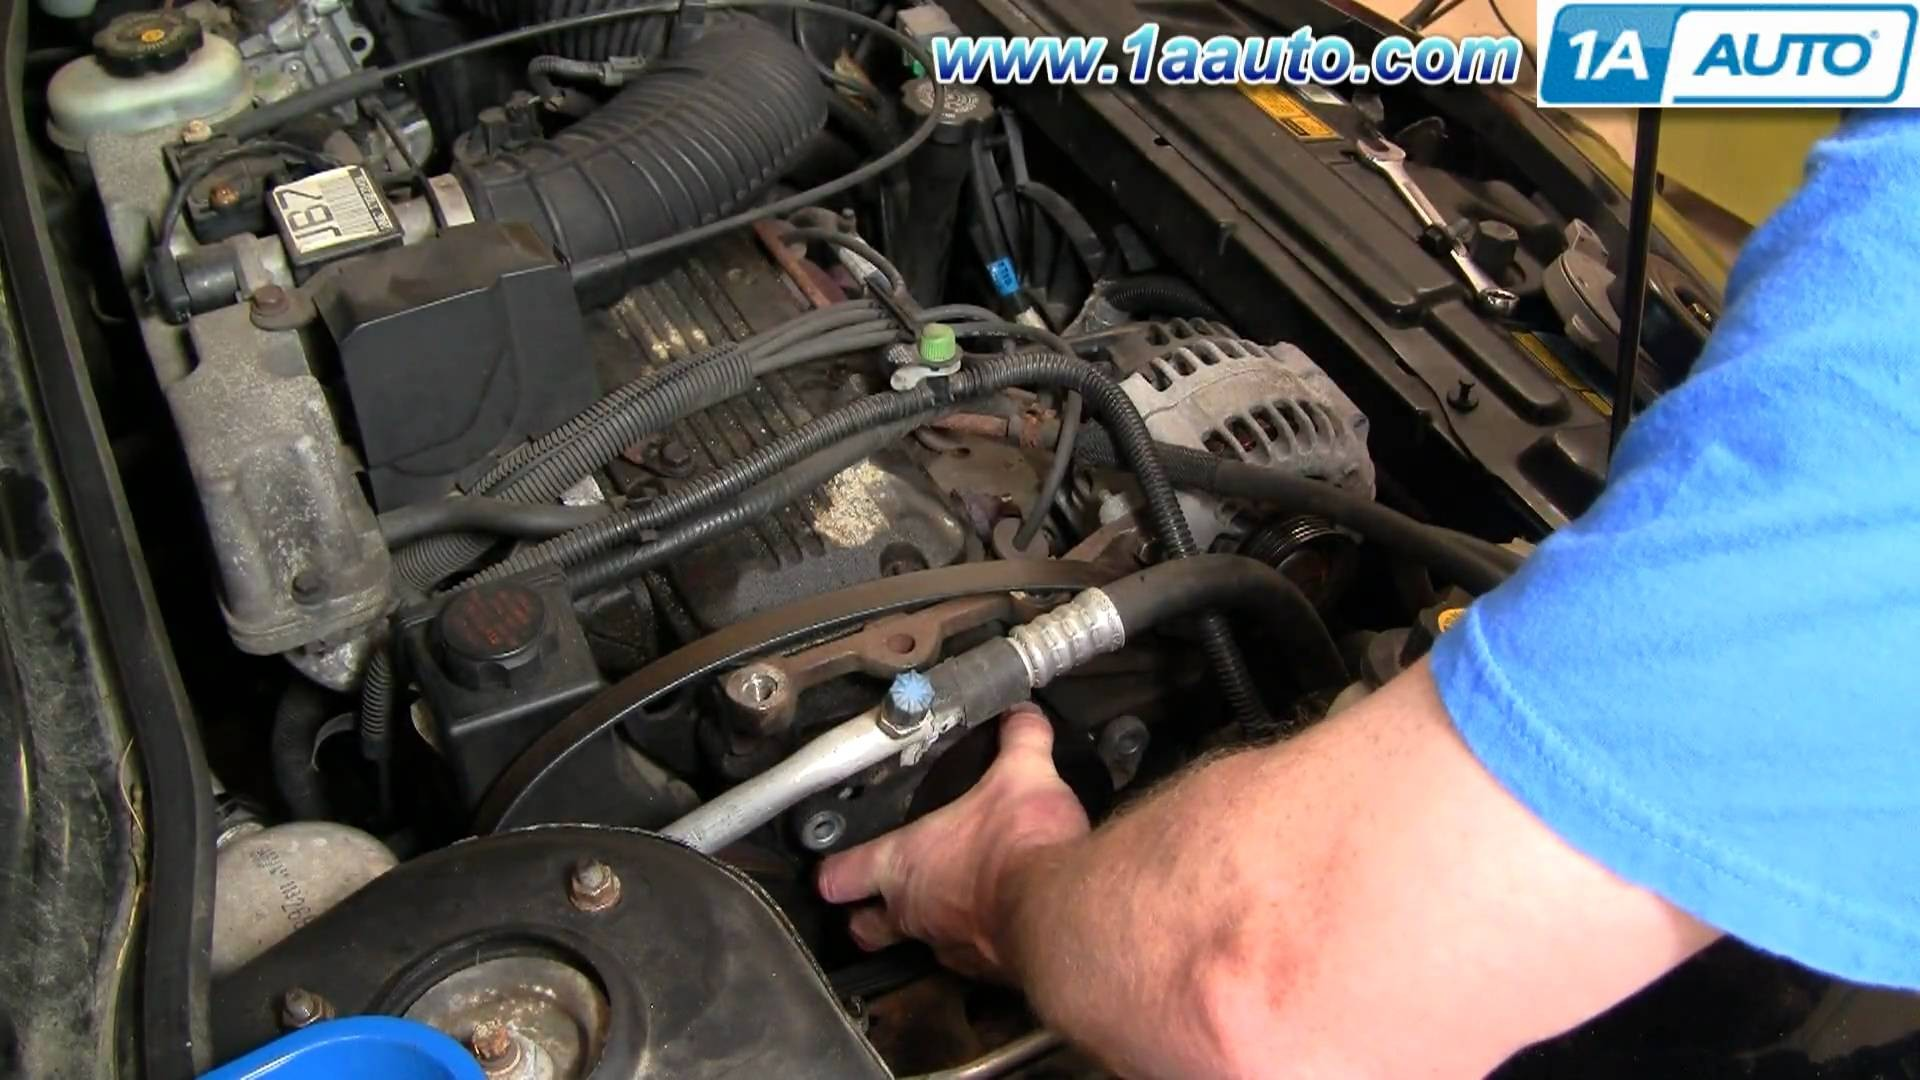 1999 Chevy Lumina Engine Diagram How to Install Replace Serpentine